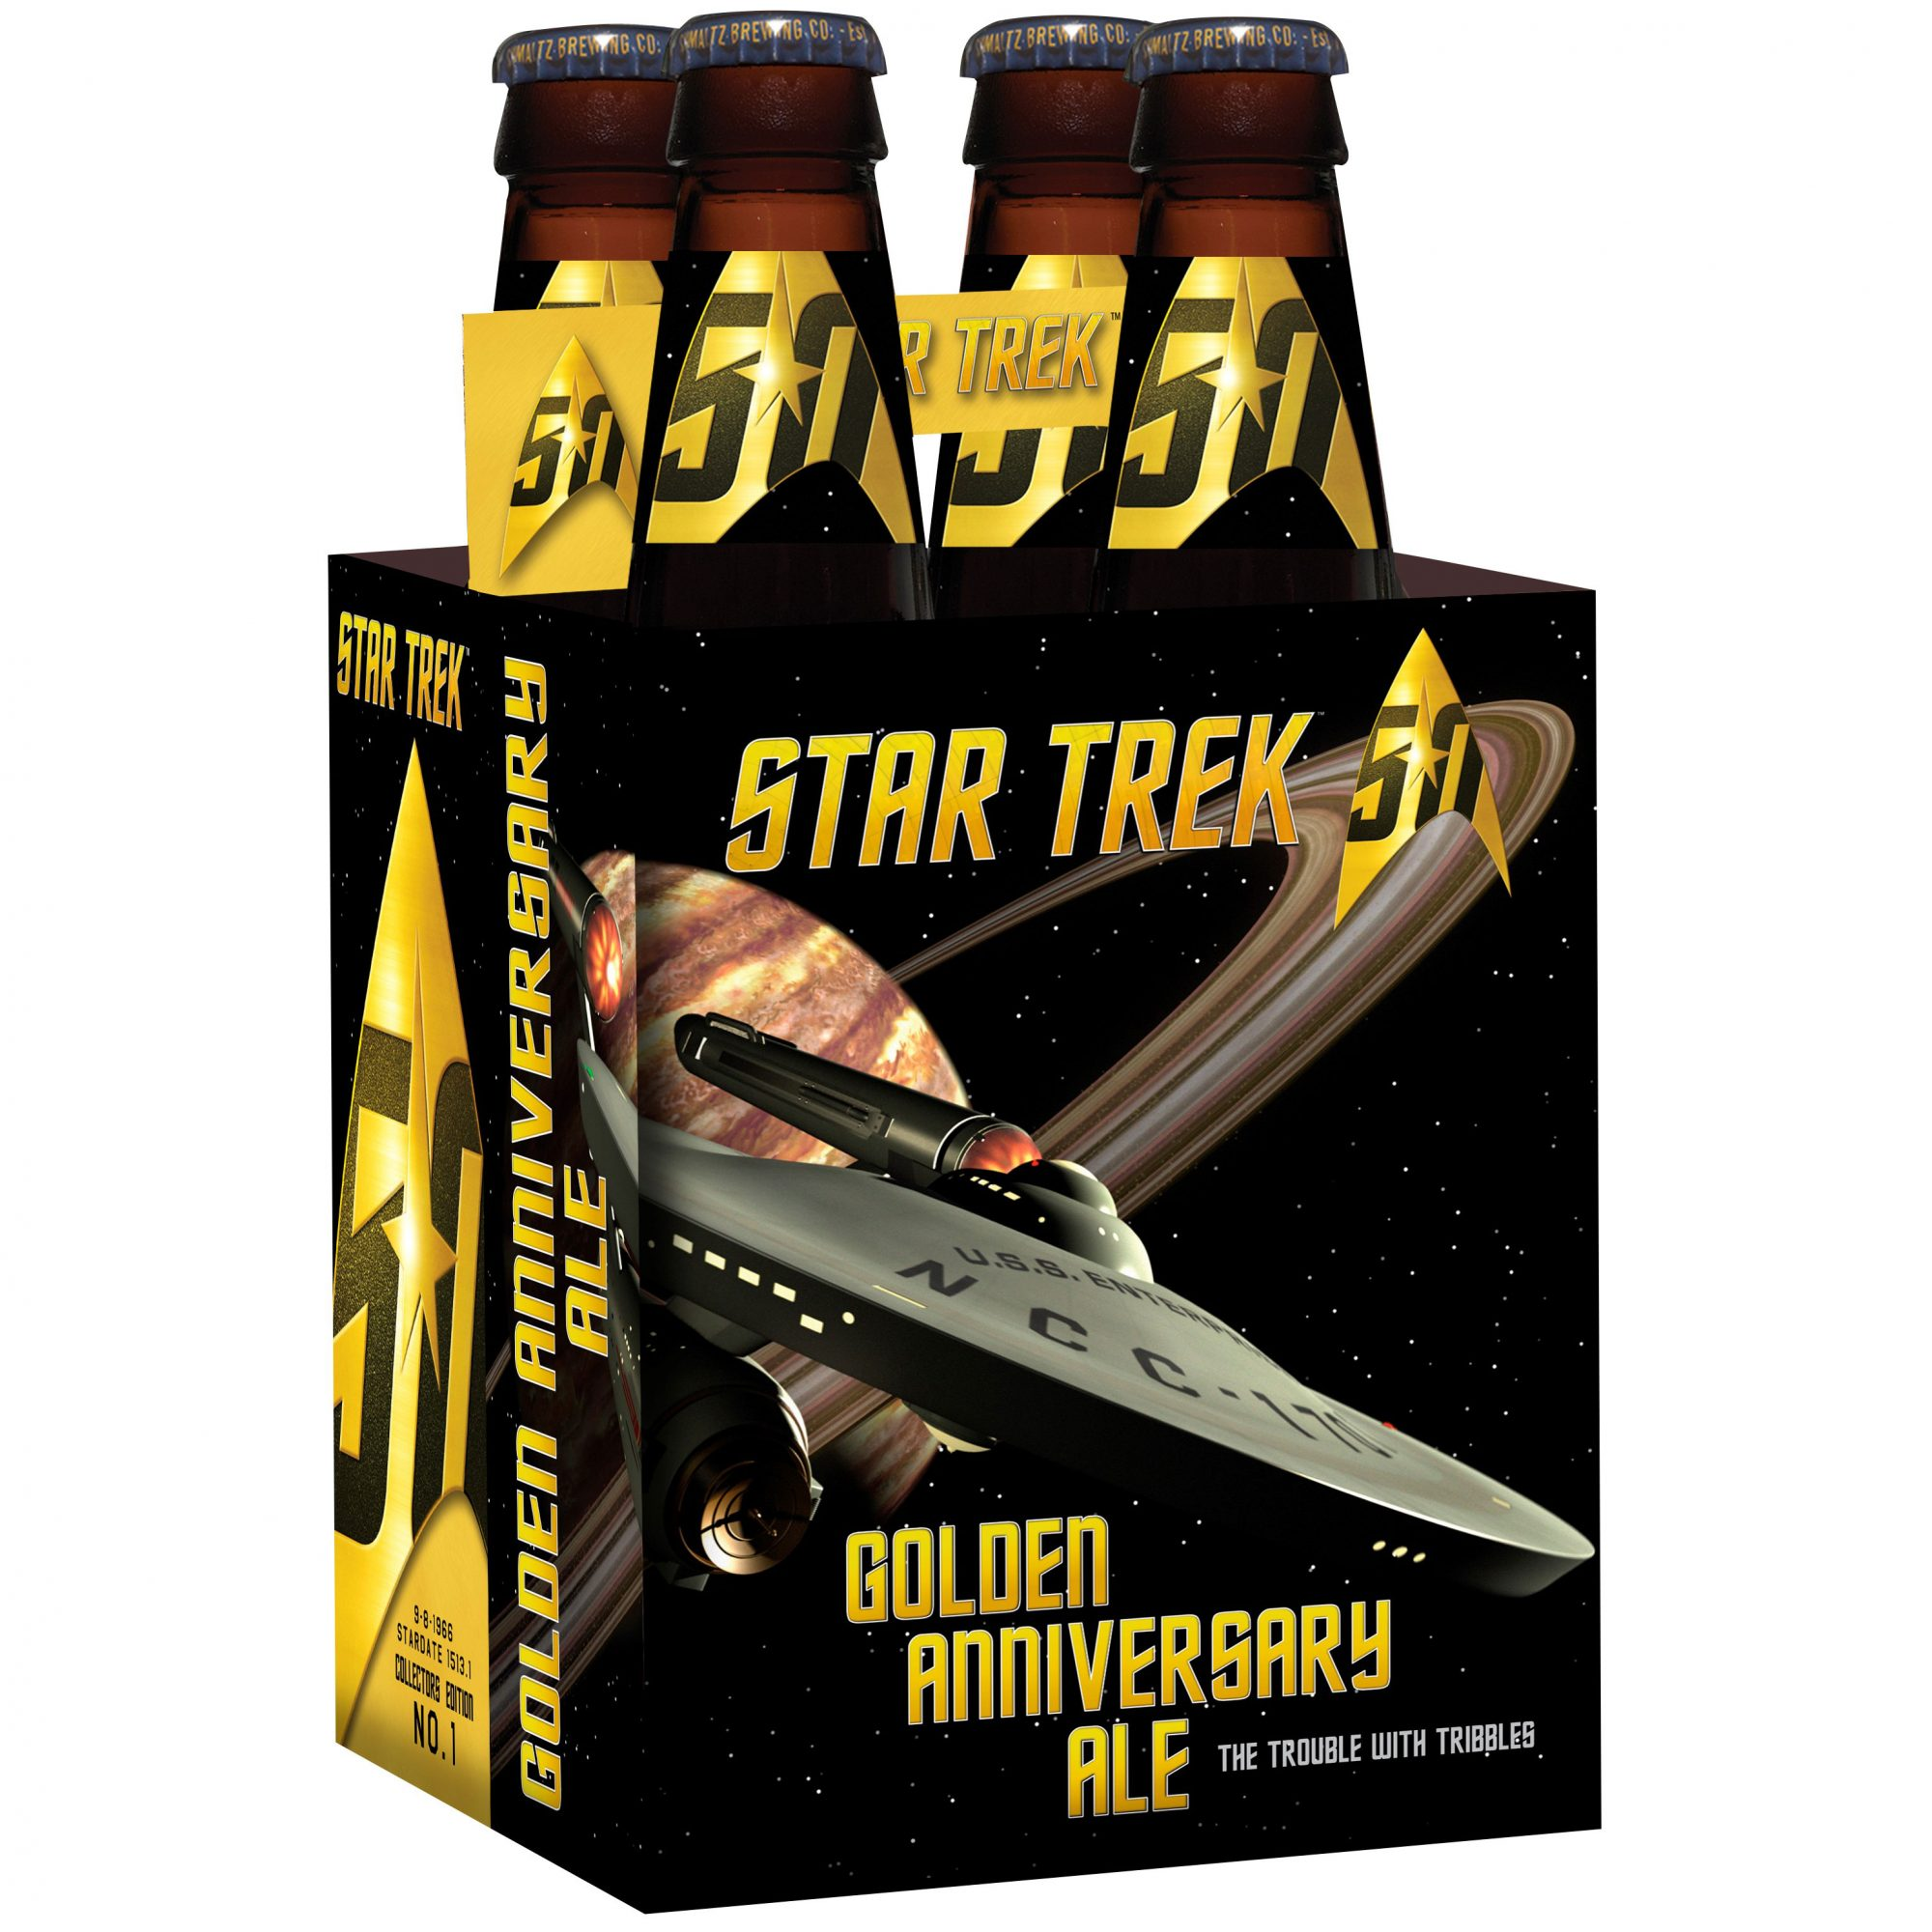 star-trek-50th-anniversary-beer-fwx-2